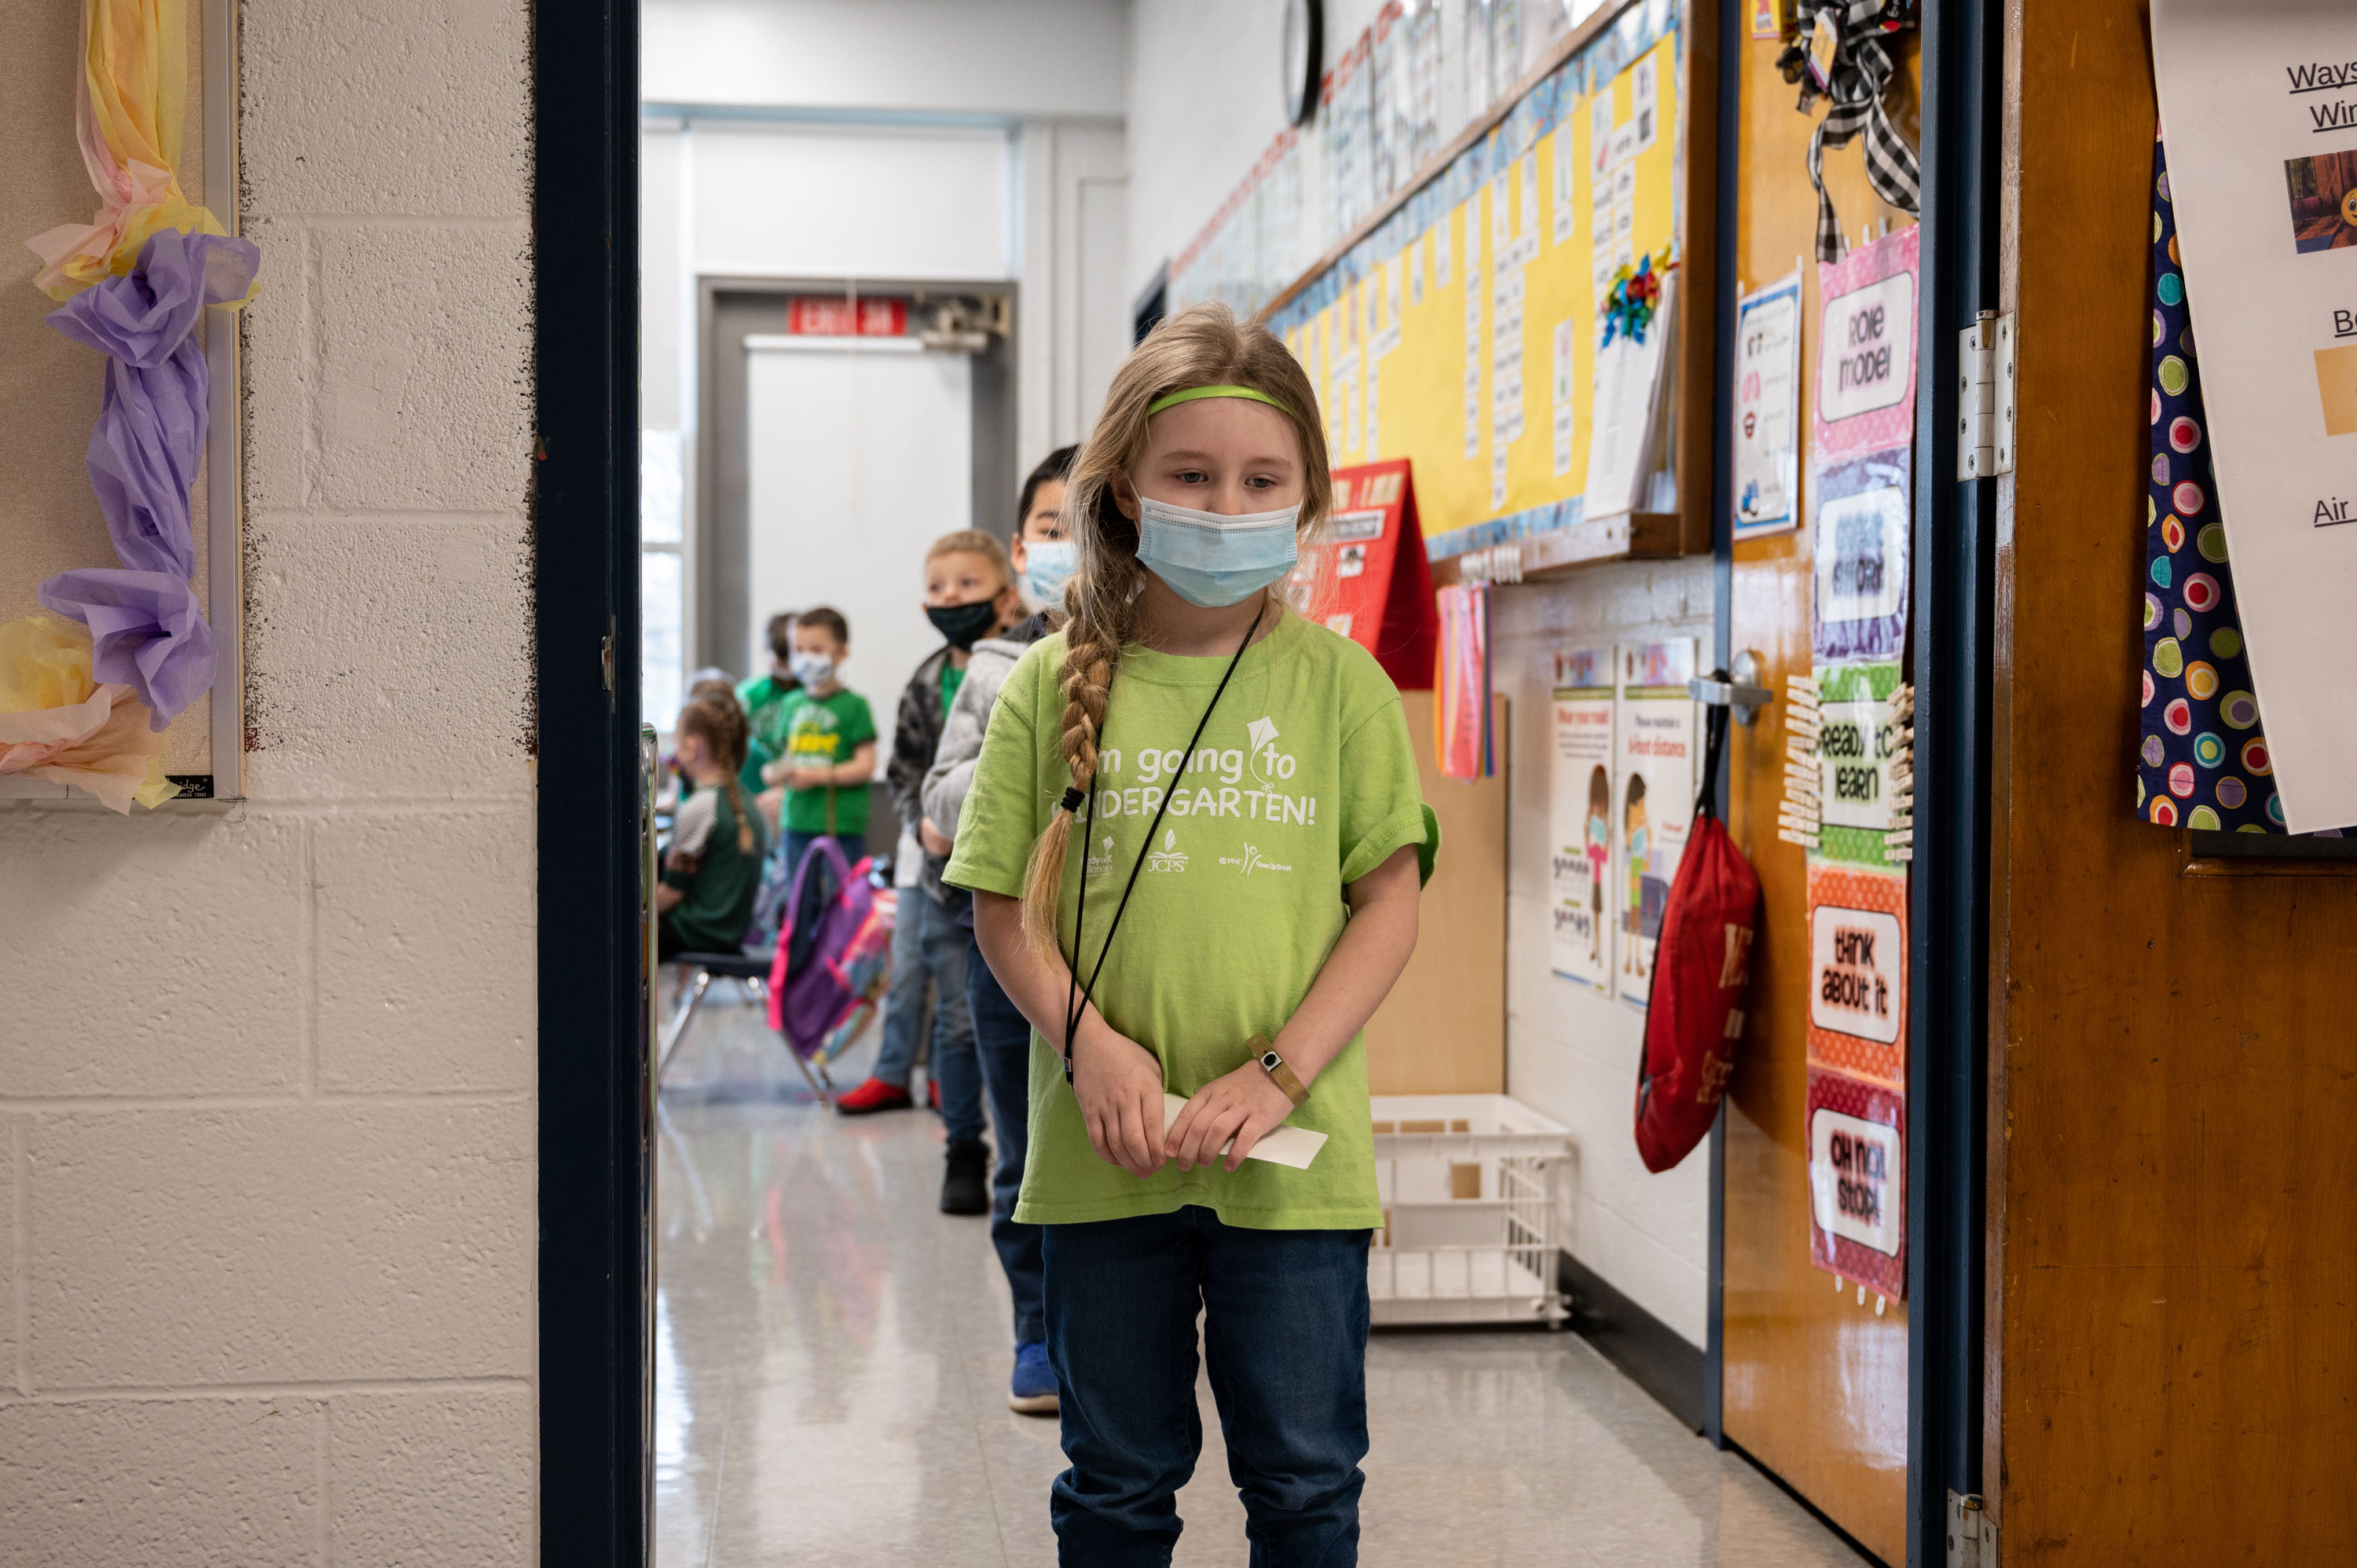 Students wait in a socially distanced single file line at Medora Elementary School on March 17 in Louisville, Kentucky.